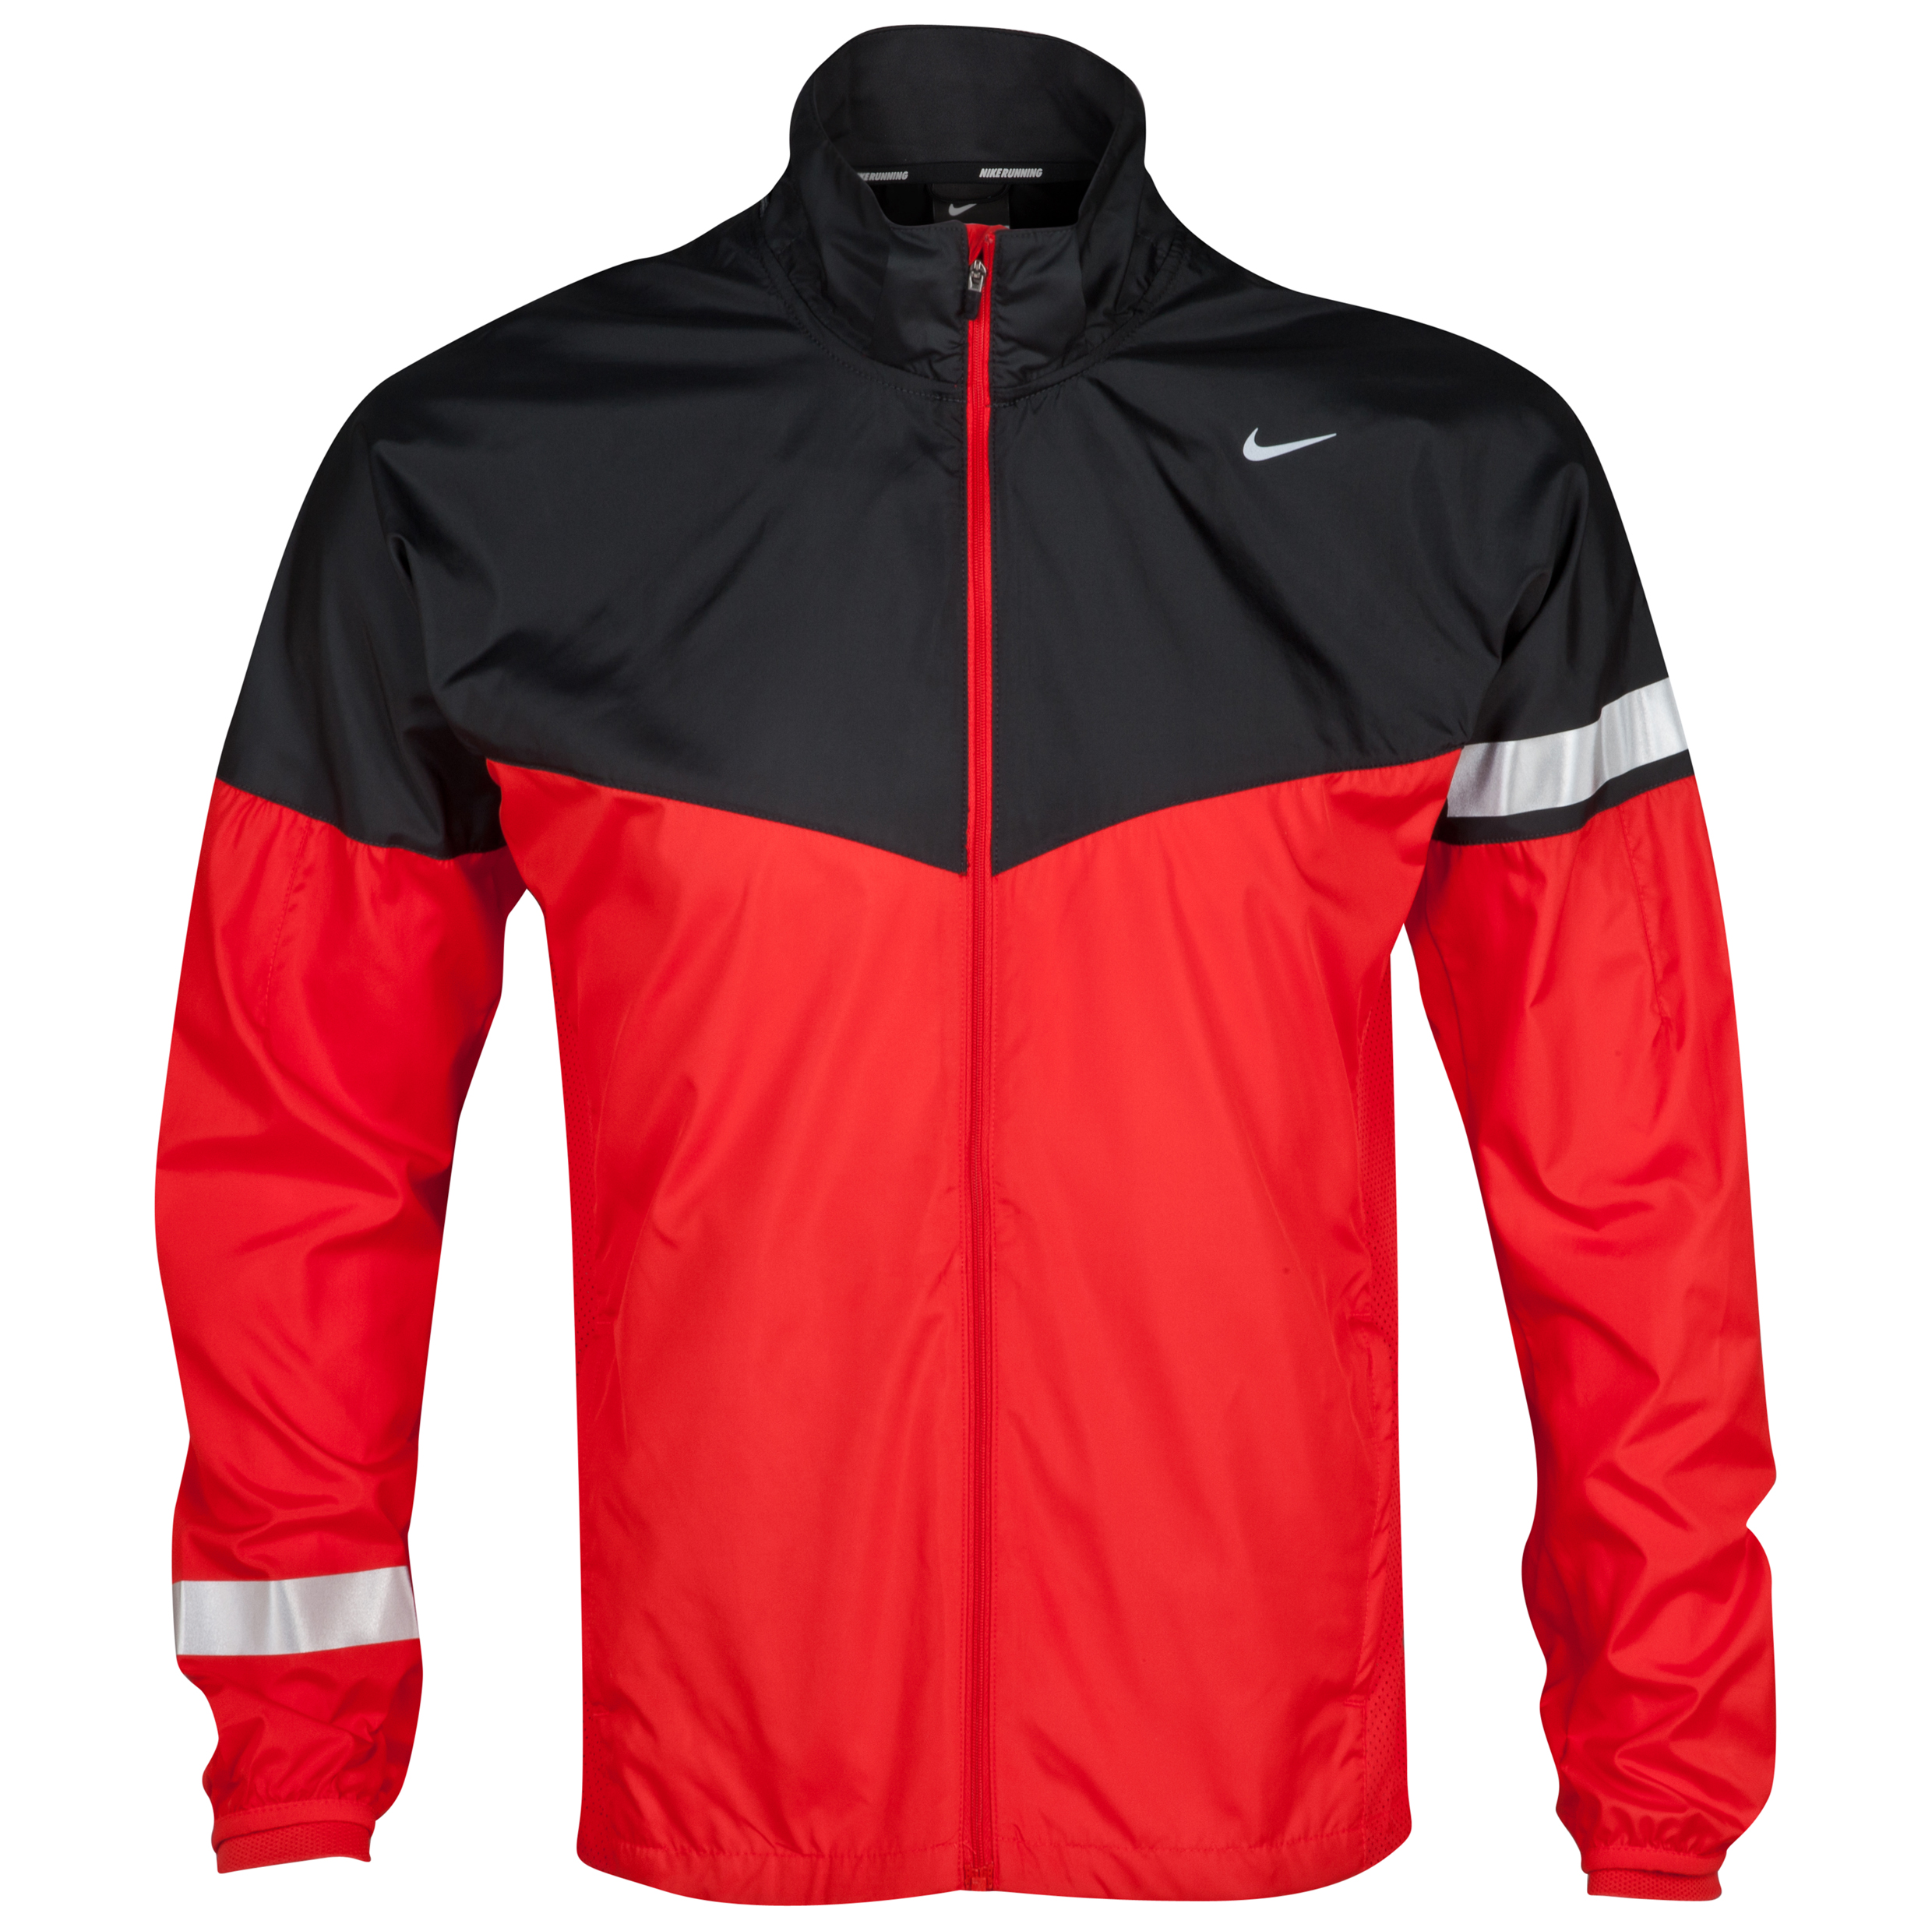 Nike Vapor Jacket - Pimento Red/Anthracite